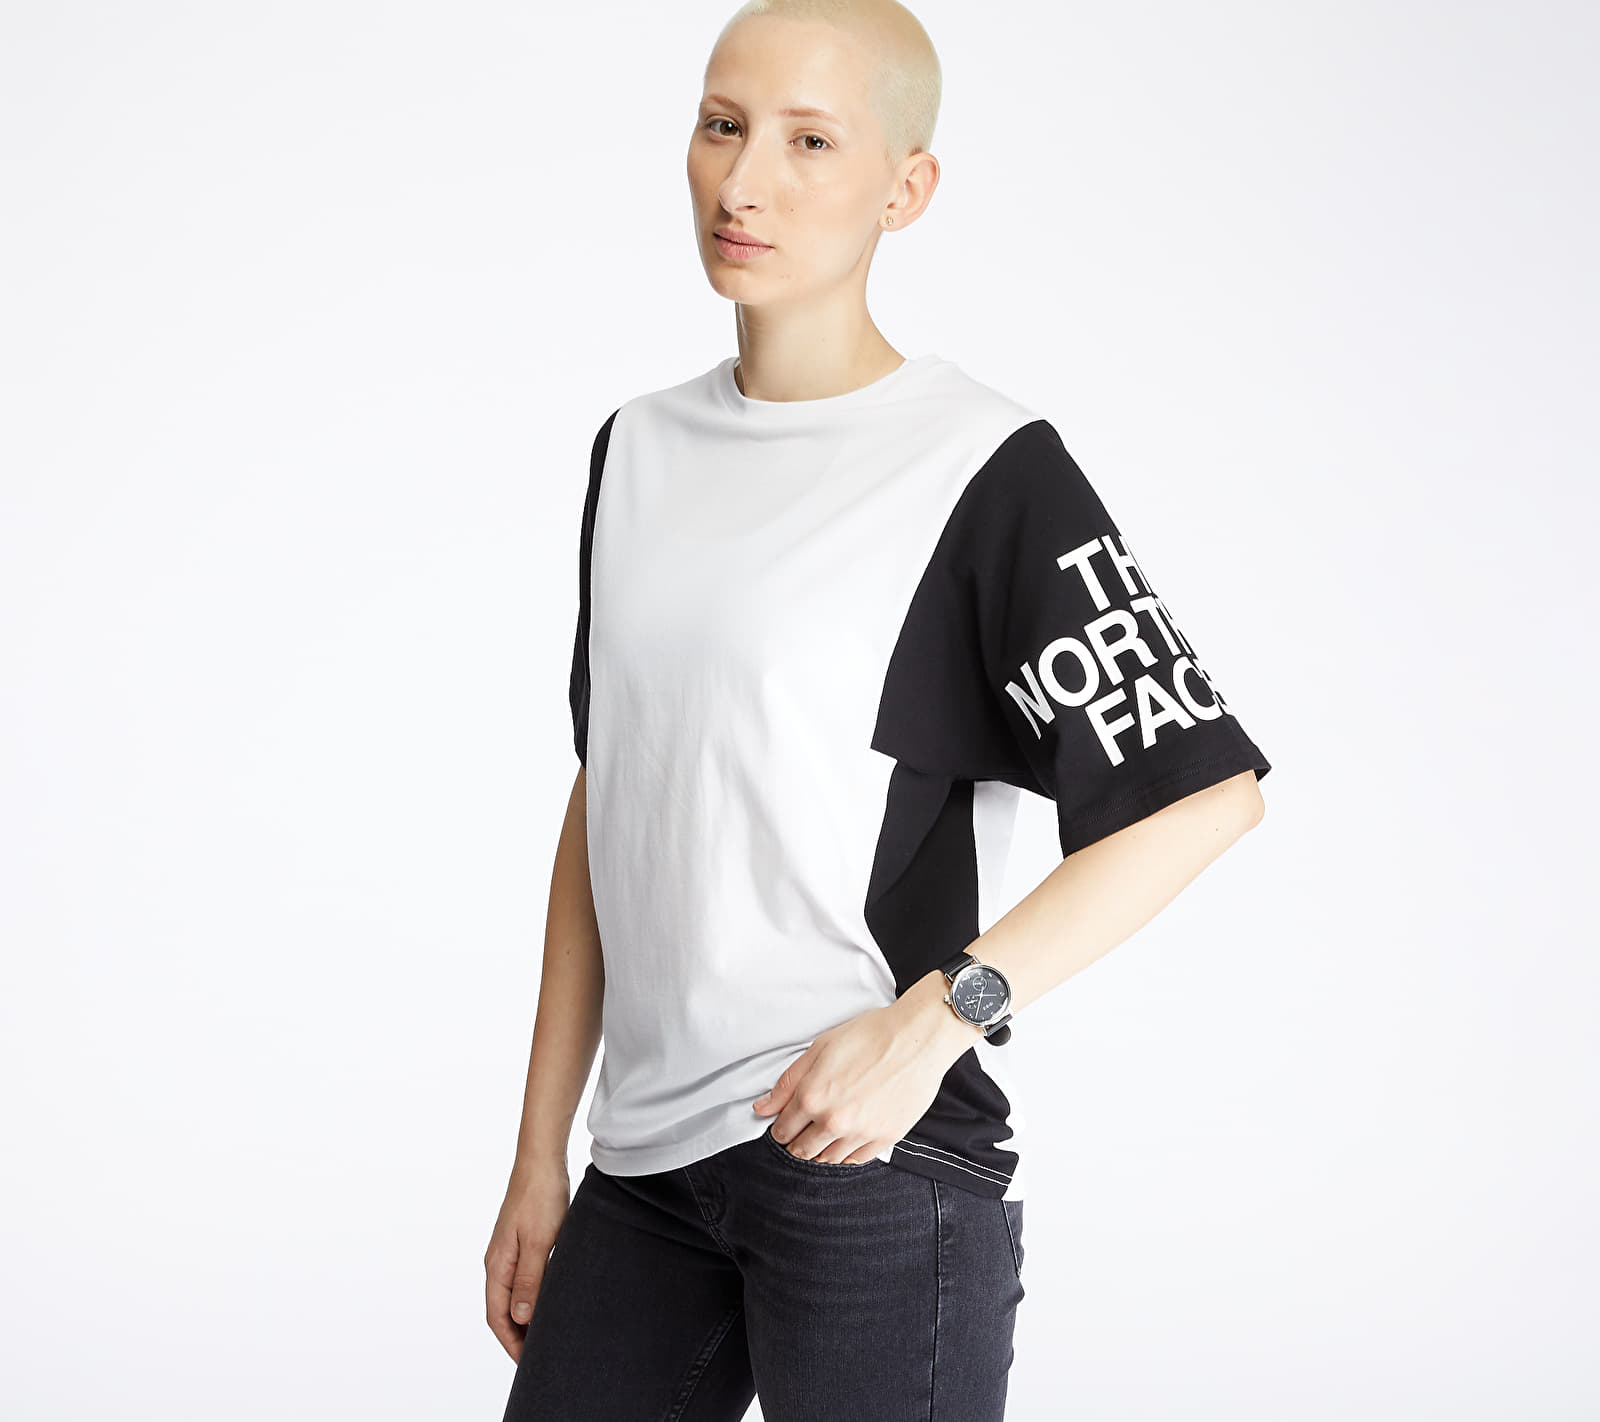 The North Face Squared Boxy Tee White